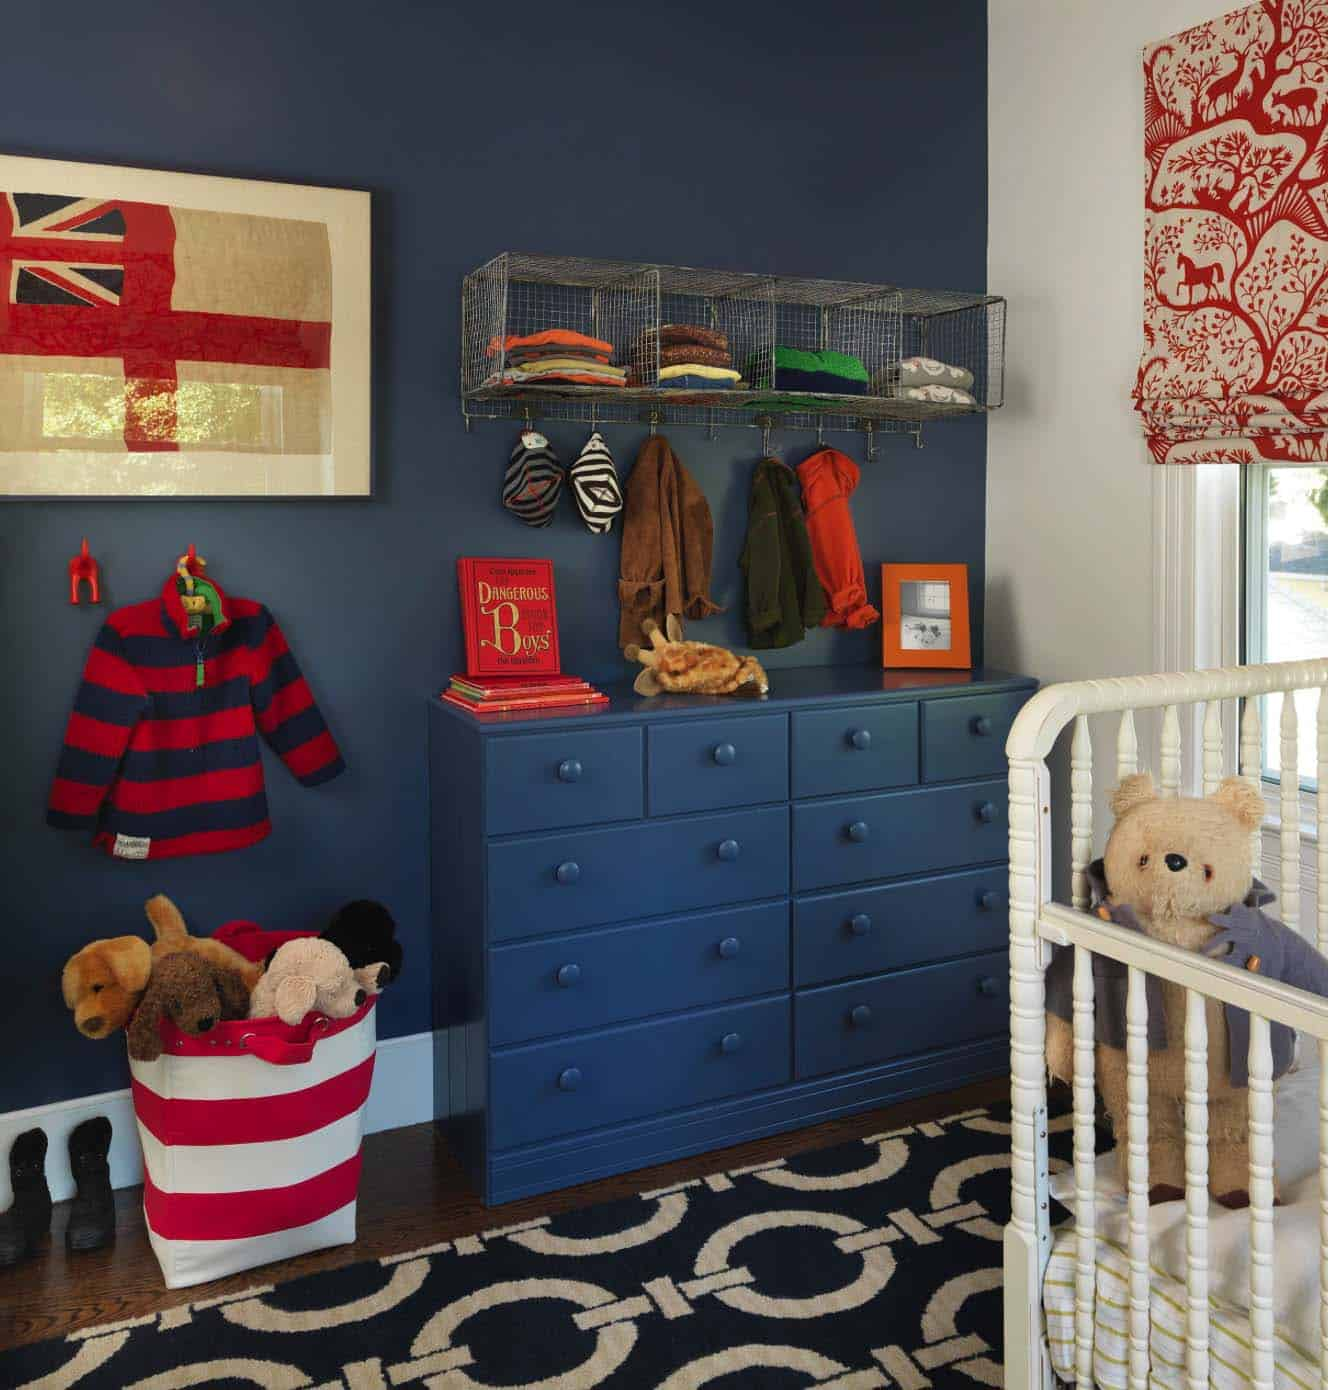 Stylish Nursery Decorating Ideas-12-1 Kindesign